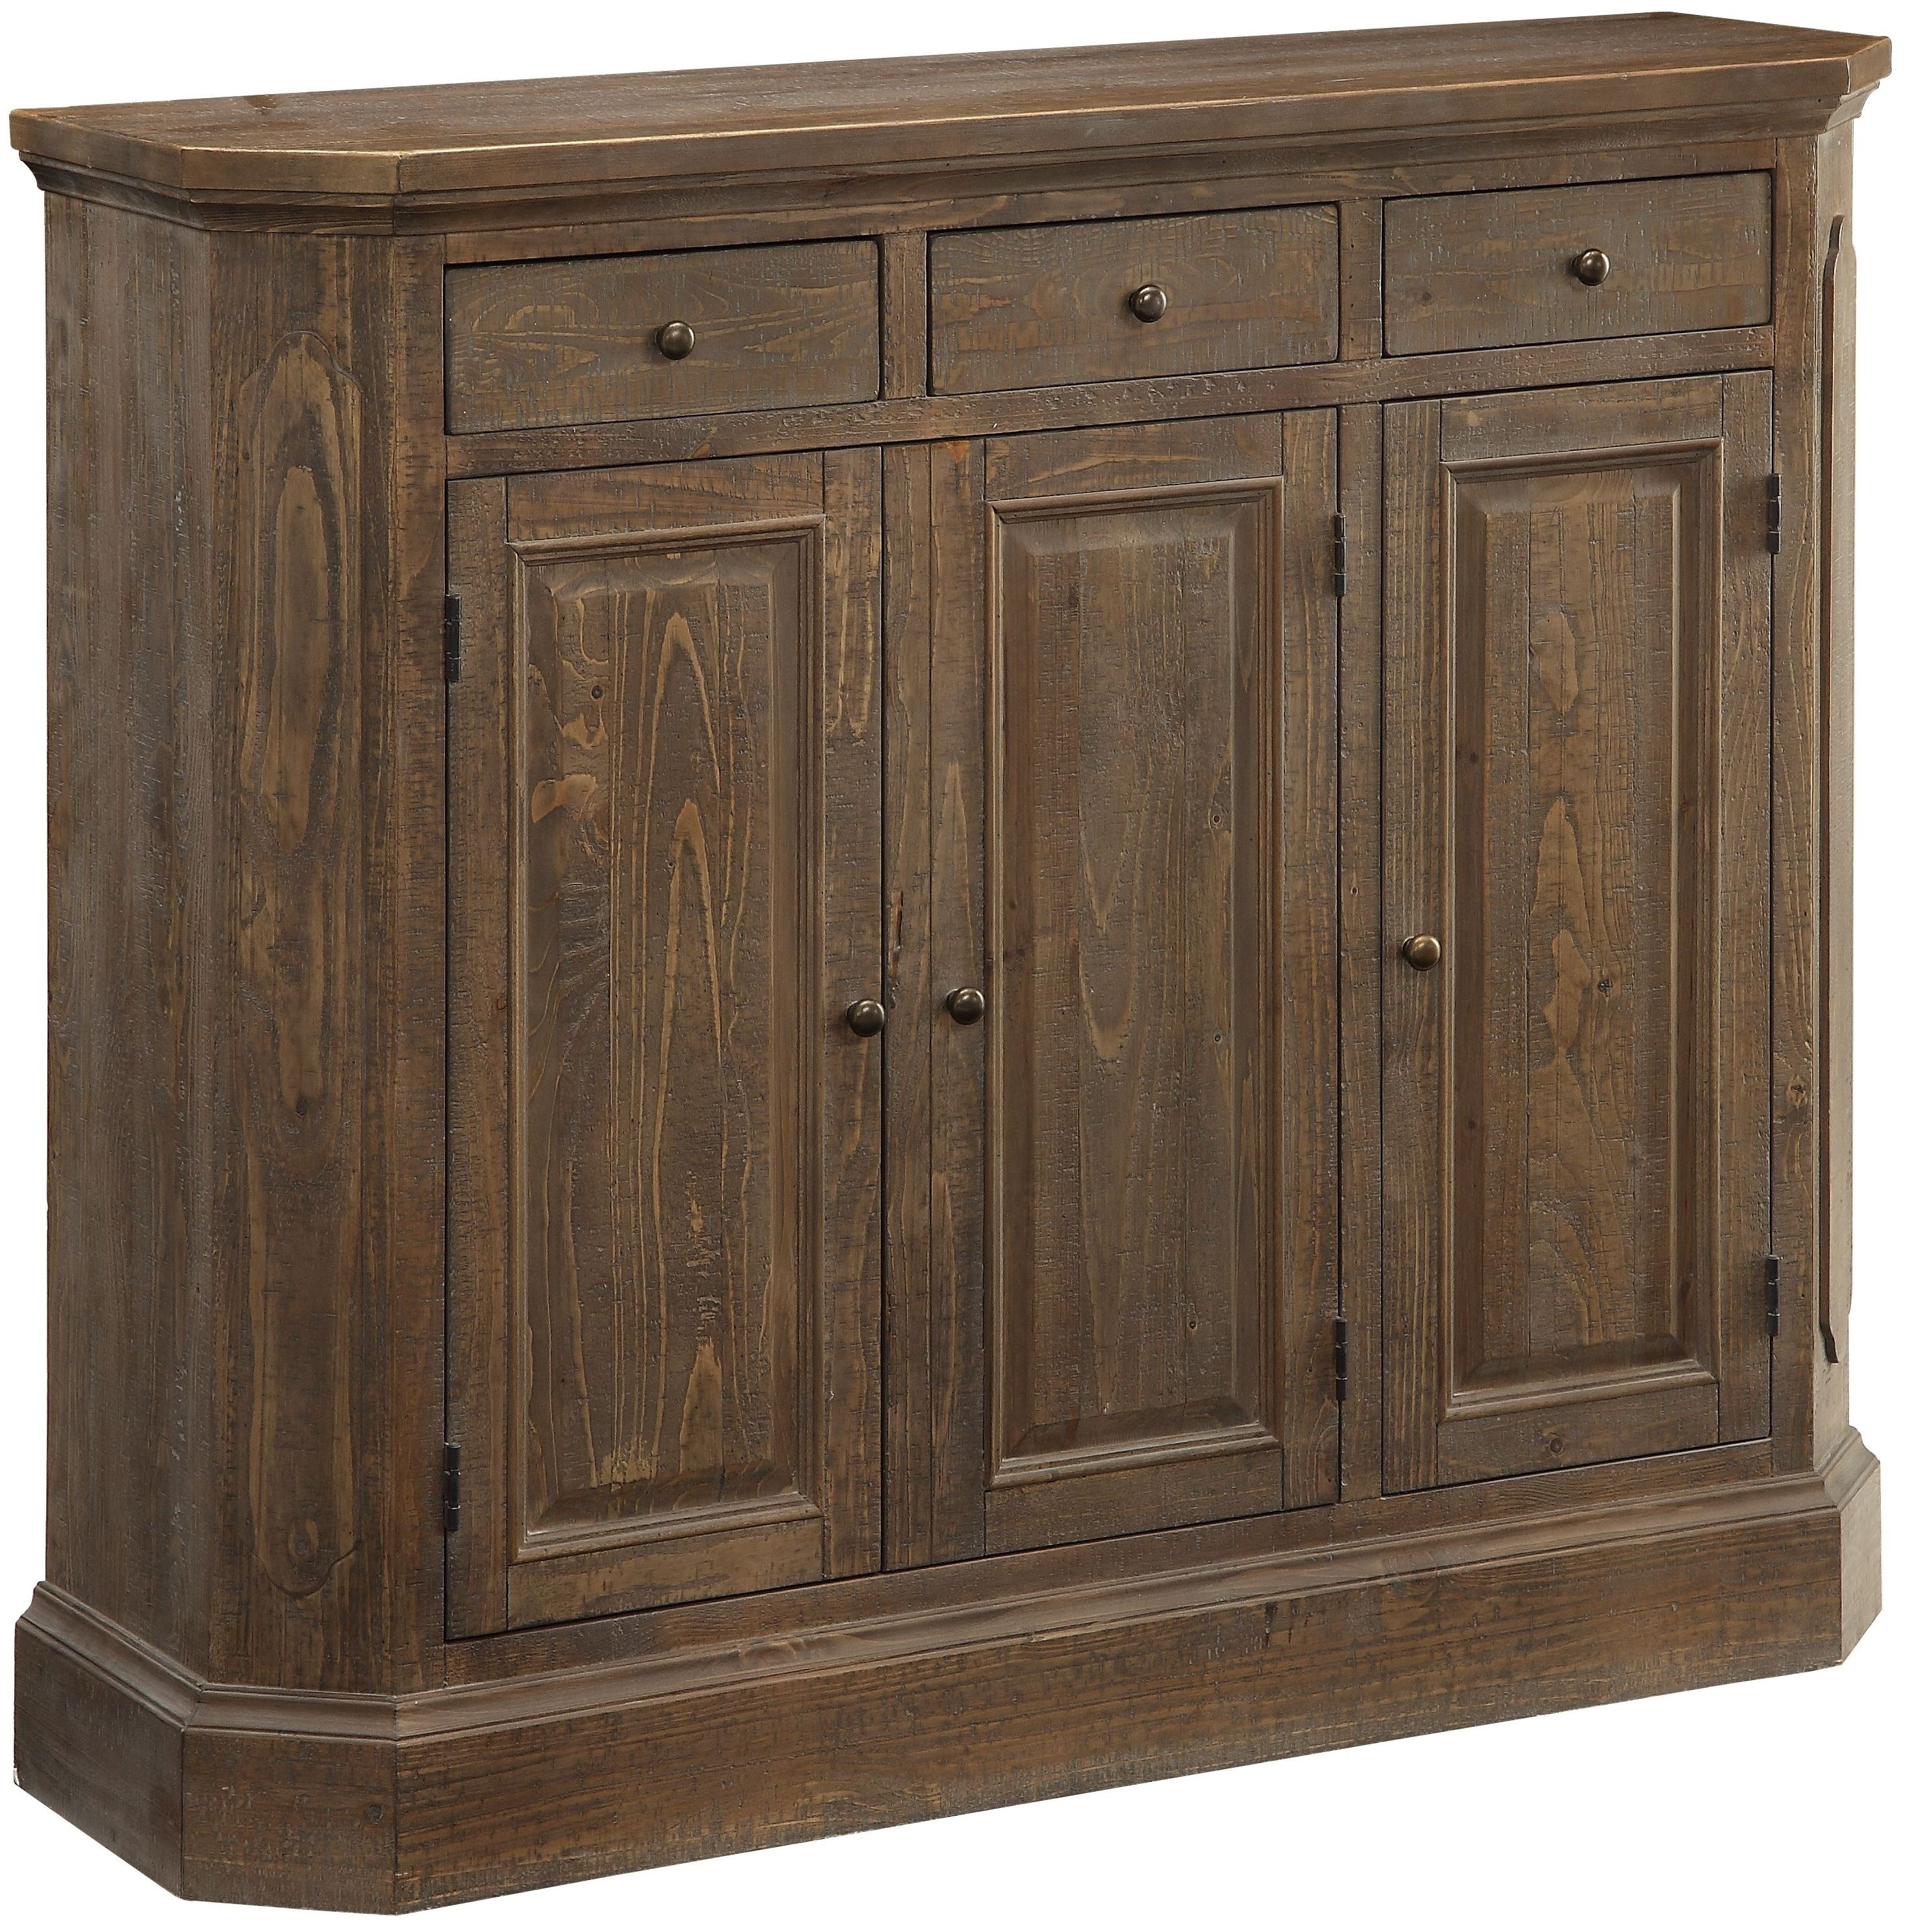 Distressed Kitchen Cabinet Doors: Cayhill Distressed Brown 3 Door Media Cabinet From Coast